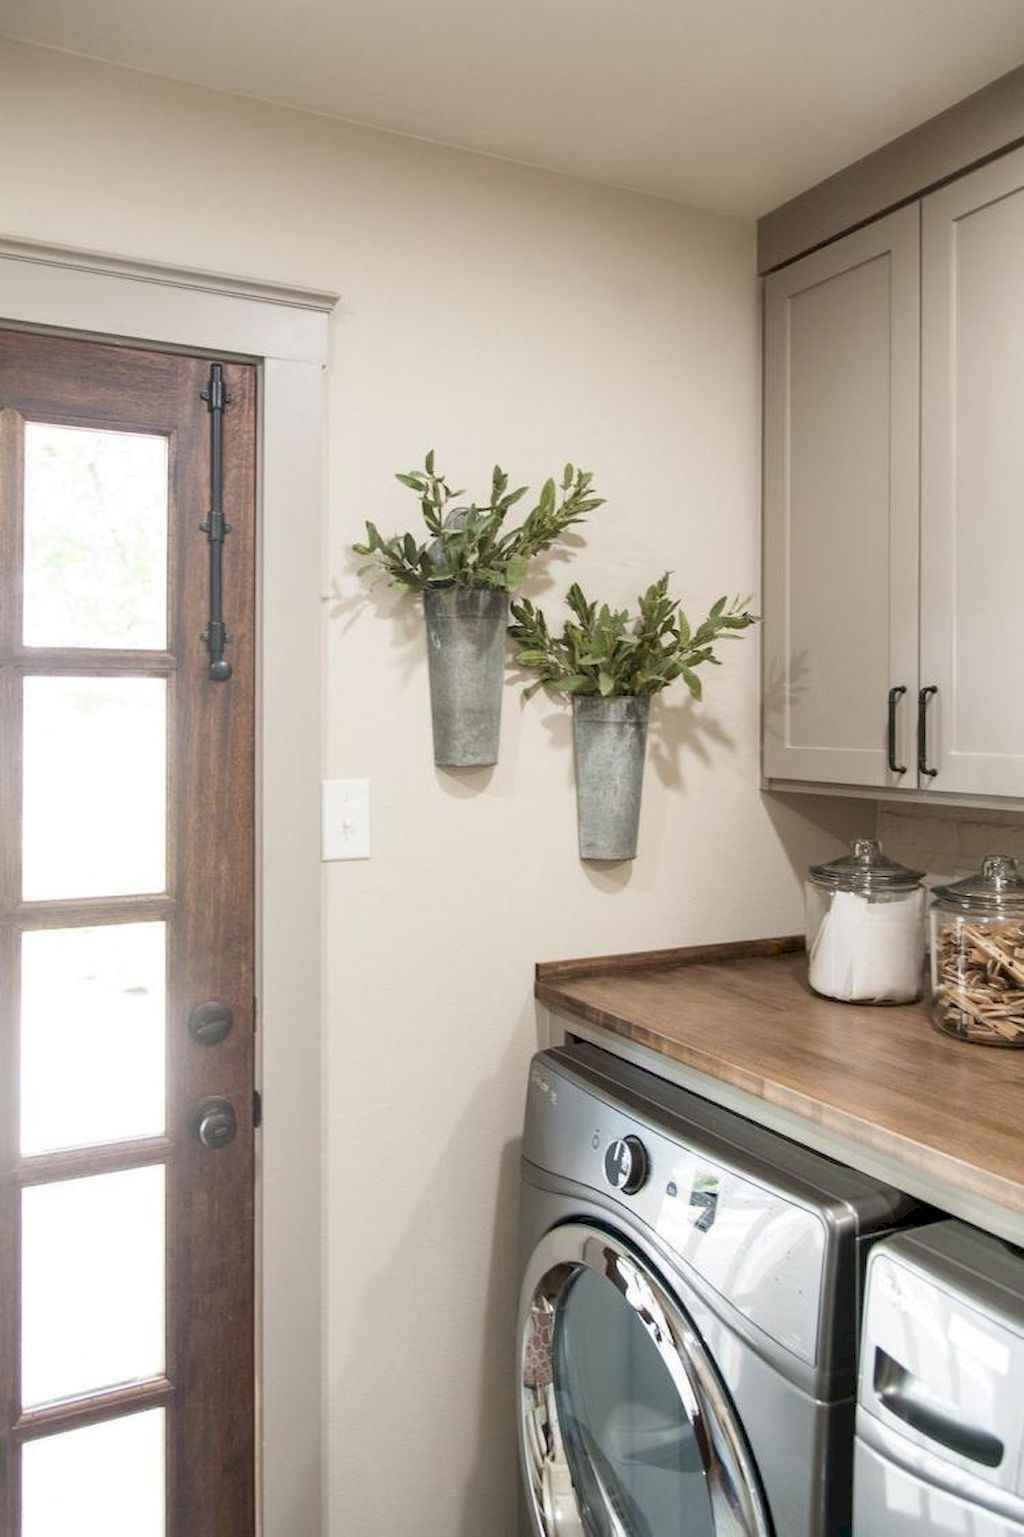 45 Rustic Farmhouse Laundry Room Design Ideas and Makeover (38)